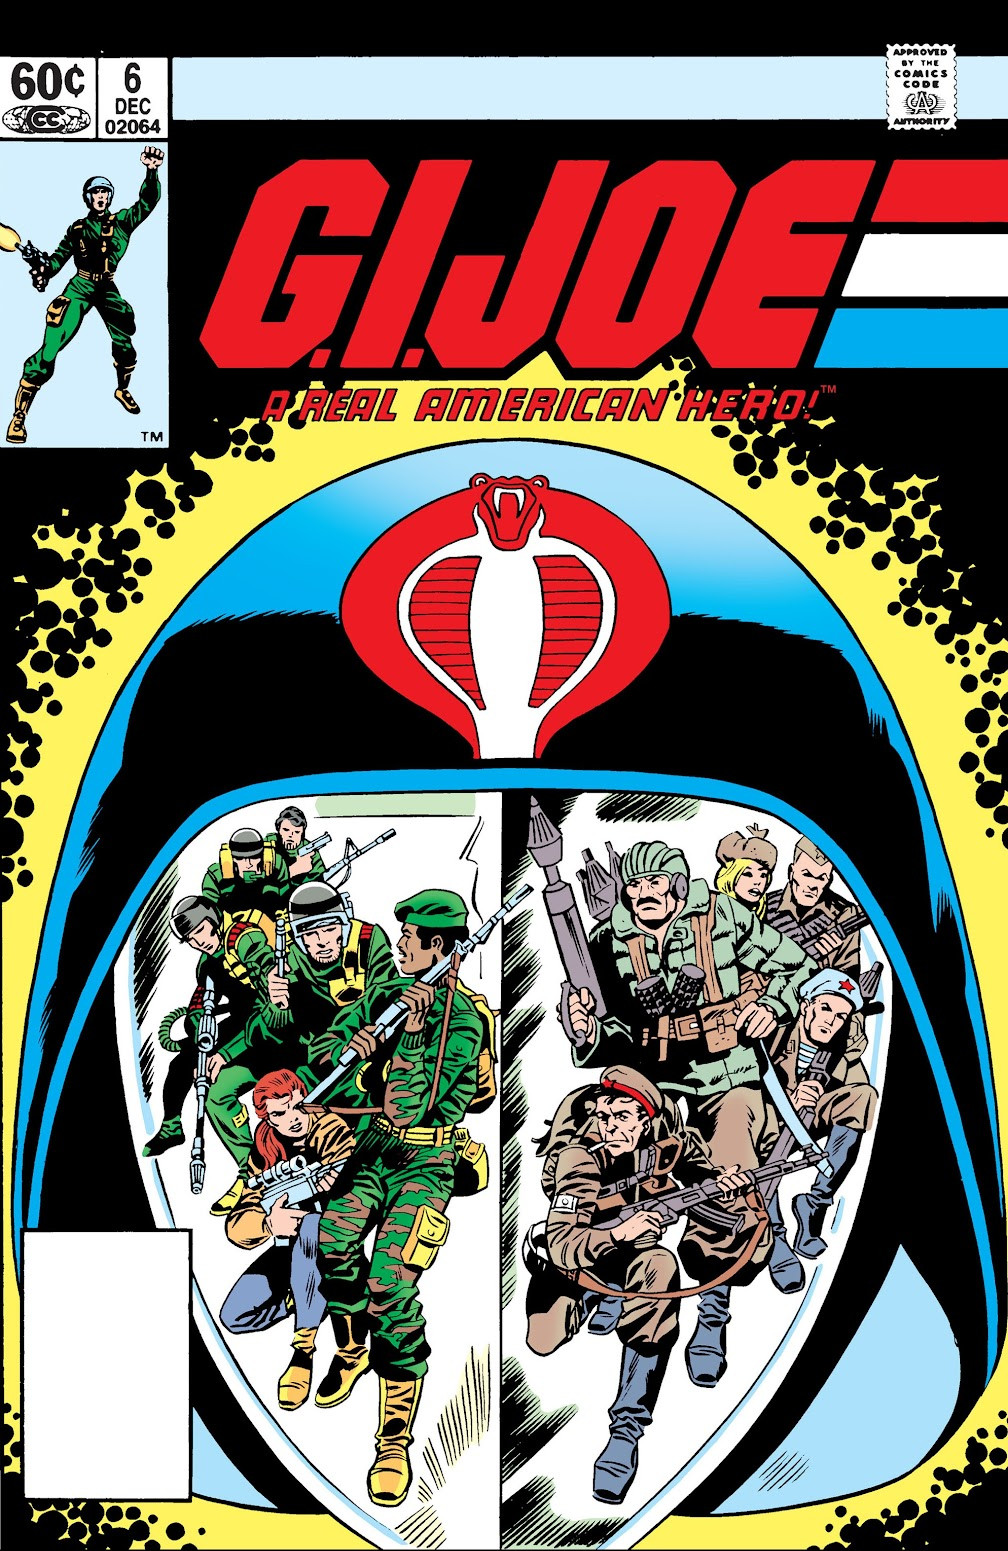 G.I. Joe: A Real American Hero Vol 1 6